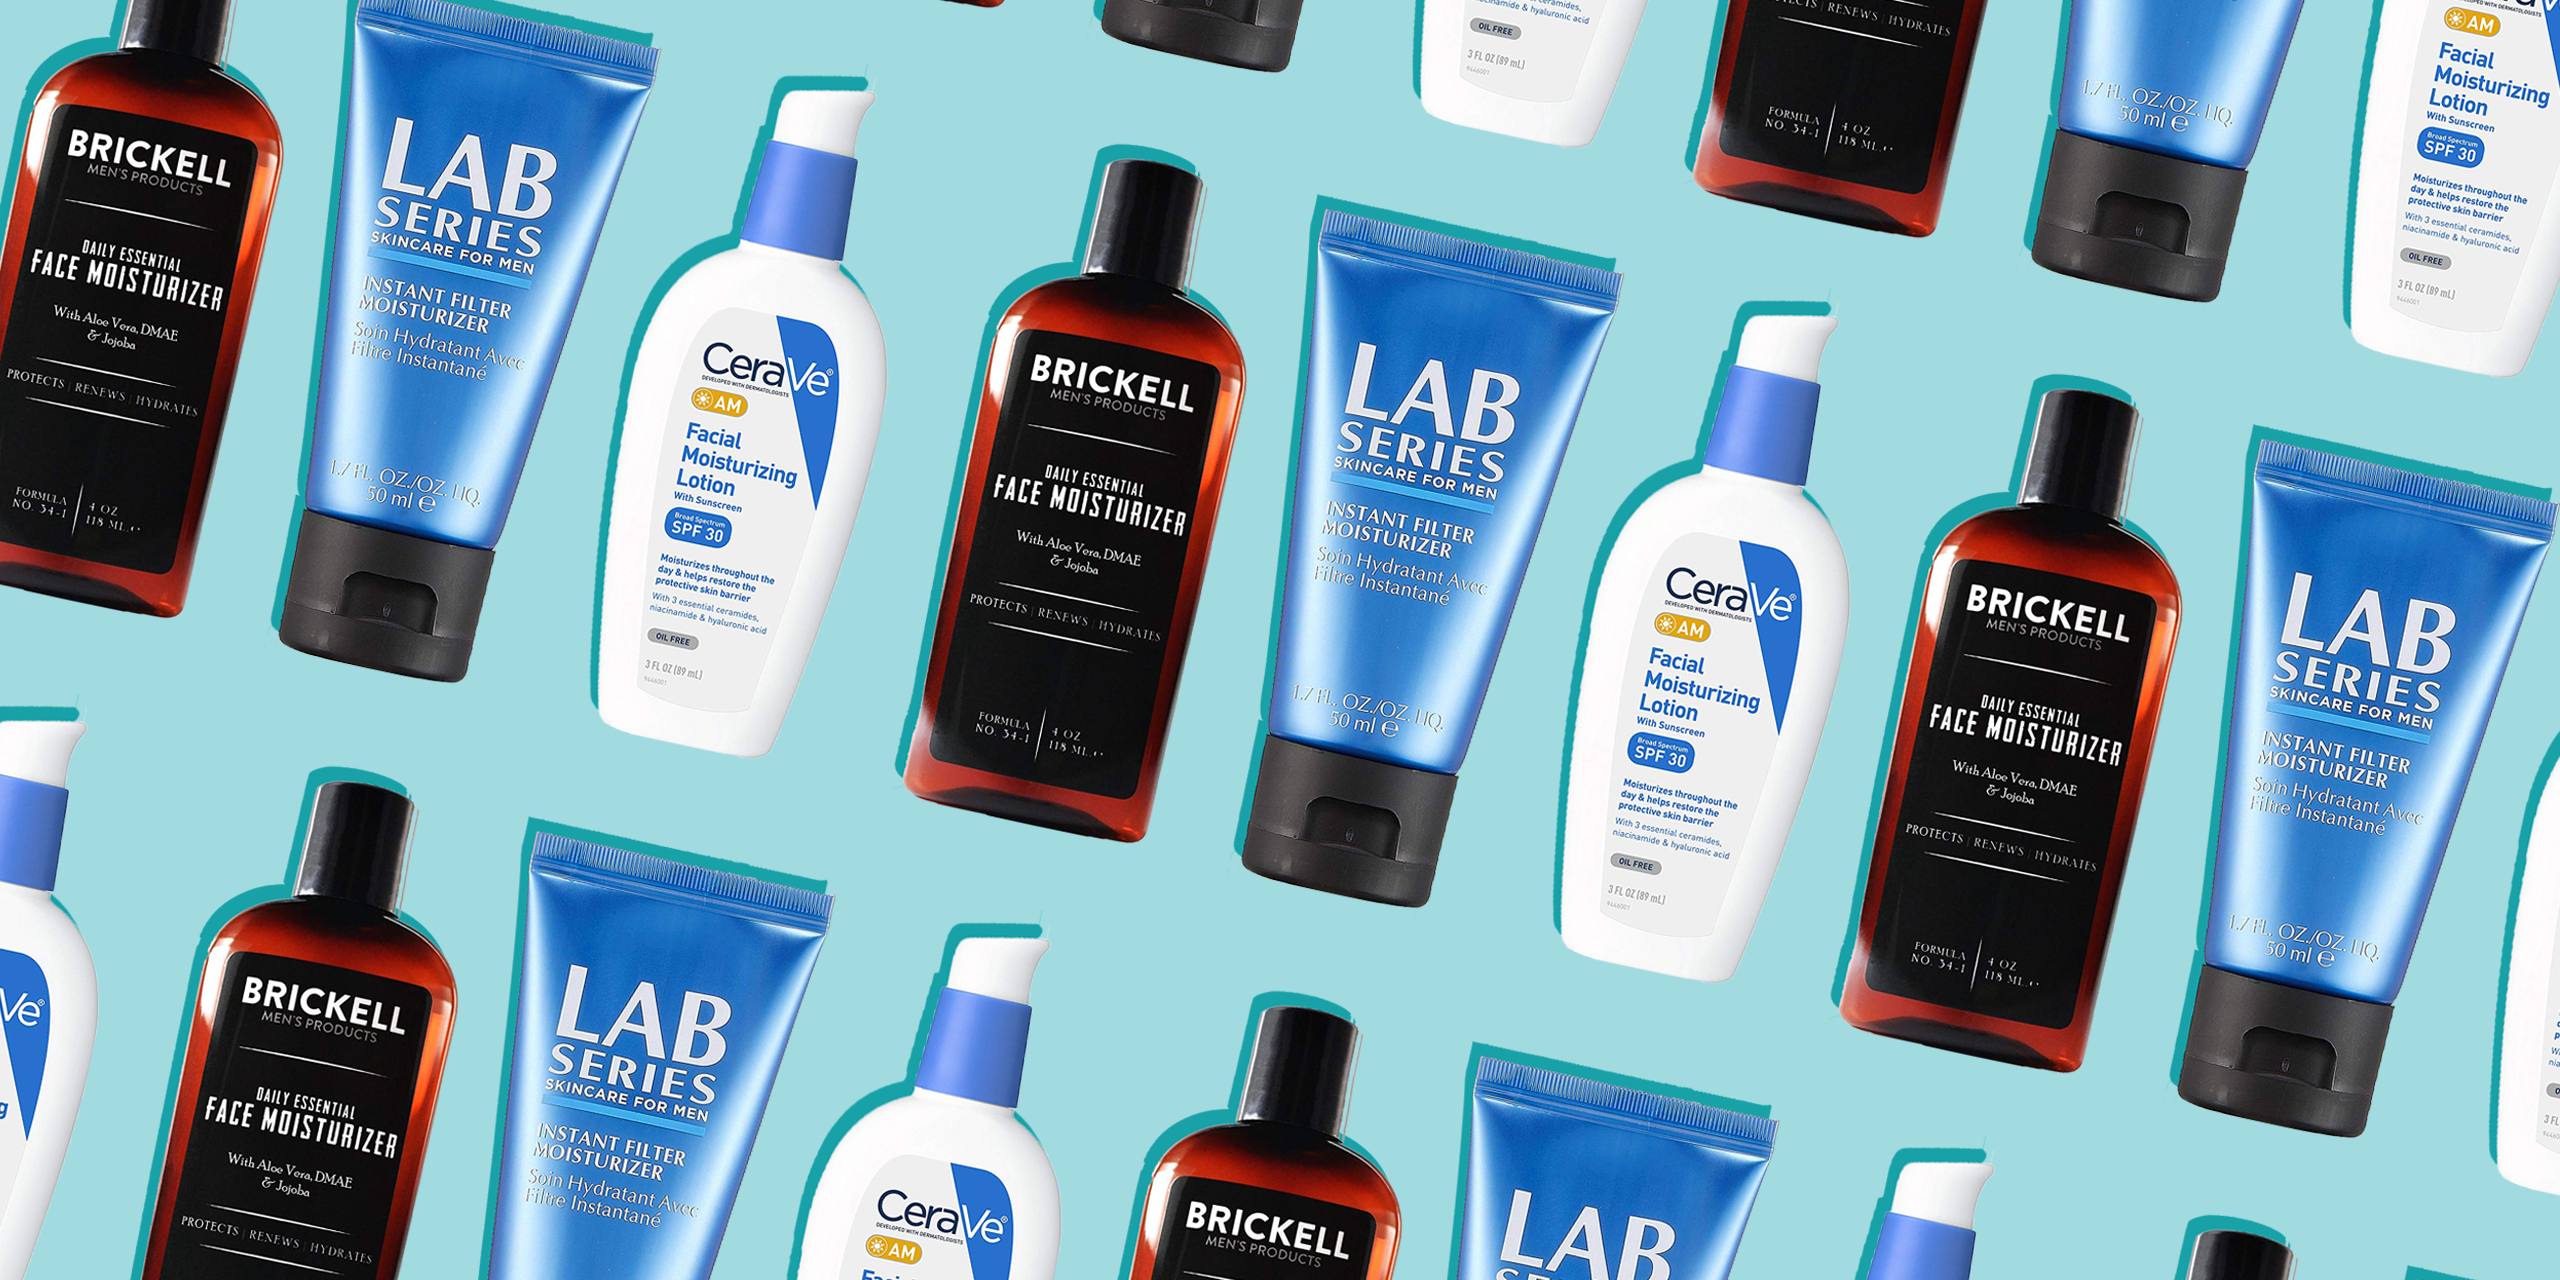 10 Best Moisturizers for Men in 2019, According to Dermatologists